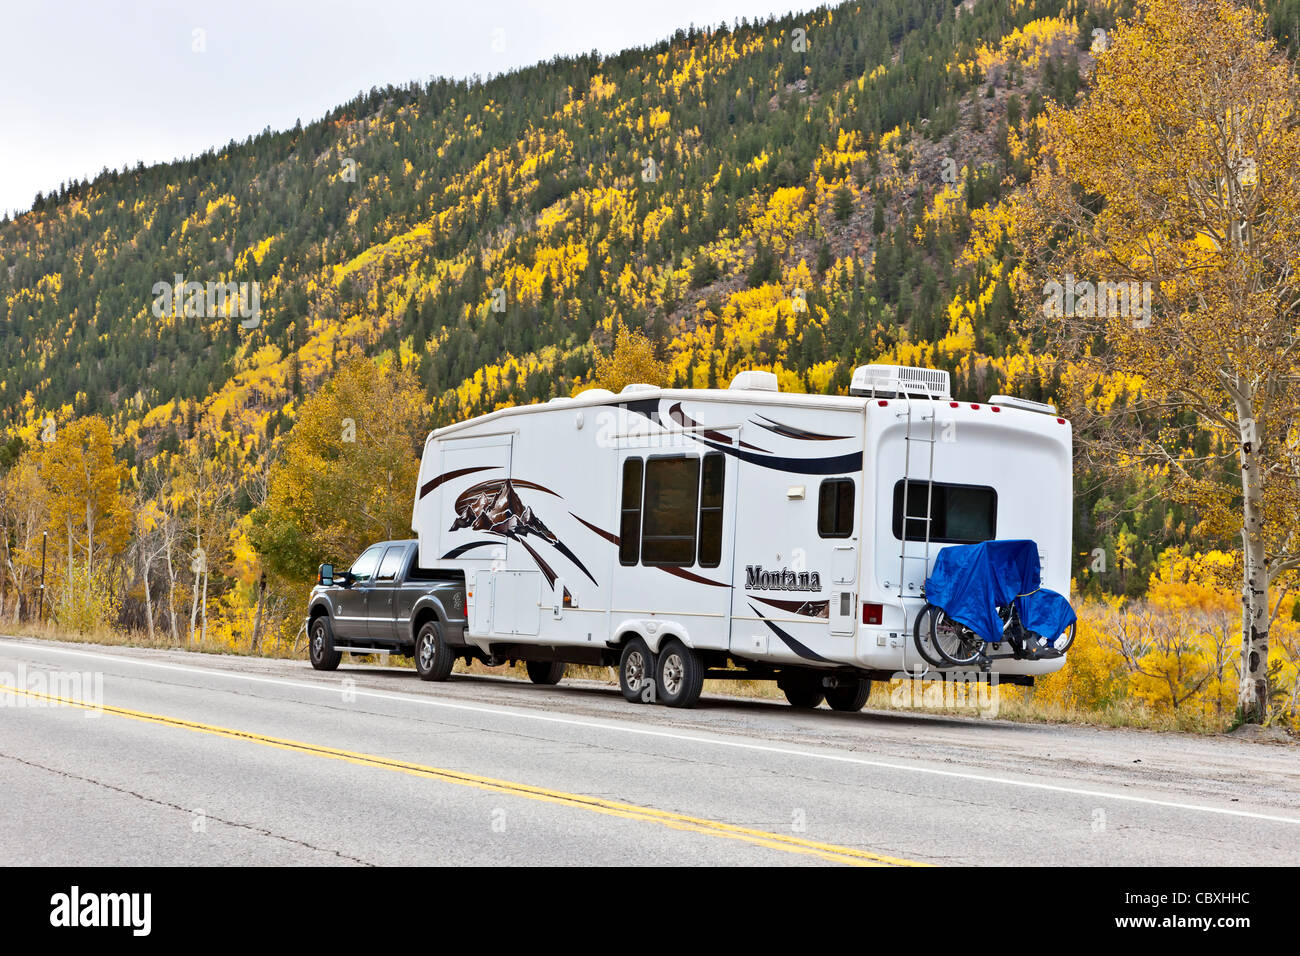 Montana 5th Wheel RV, Herbstlaub. Stockbild